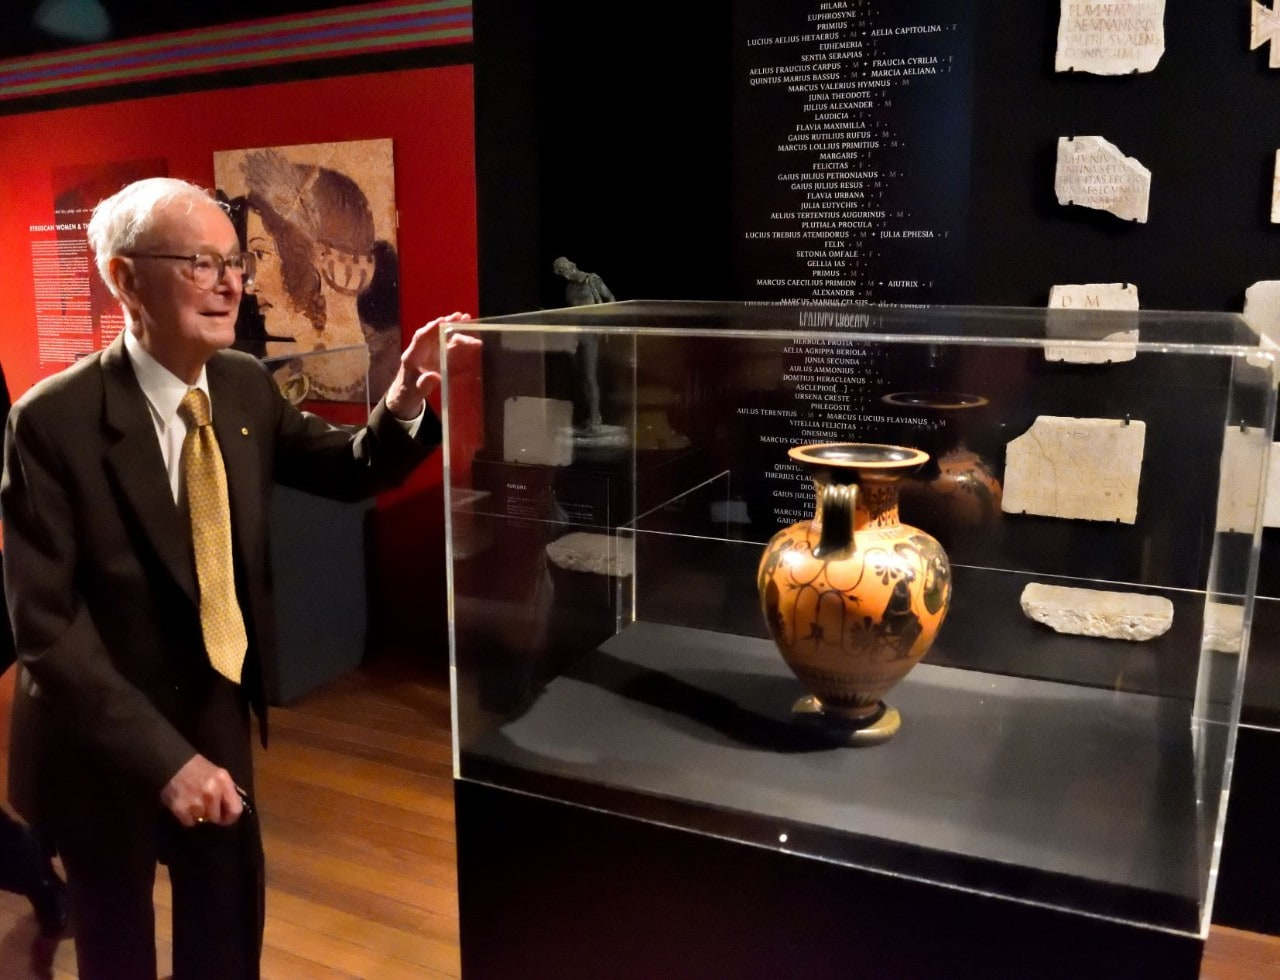 Professor Alexander Cambitoglou: at the unveiling of the Cambitoglou Amphora in Nicholson Museum in 2018.